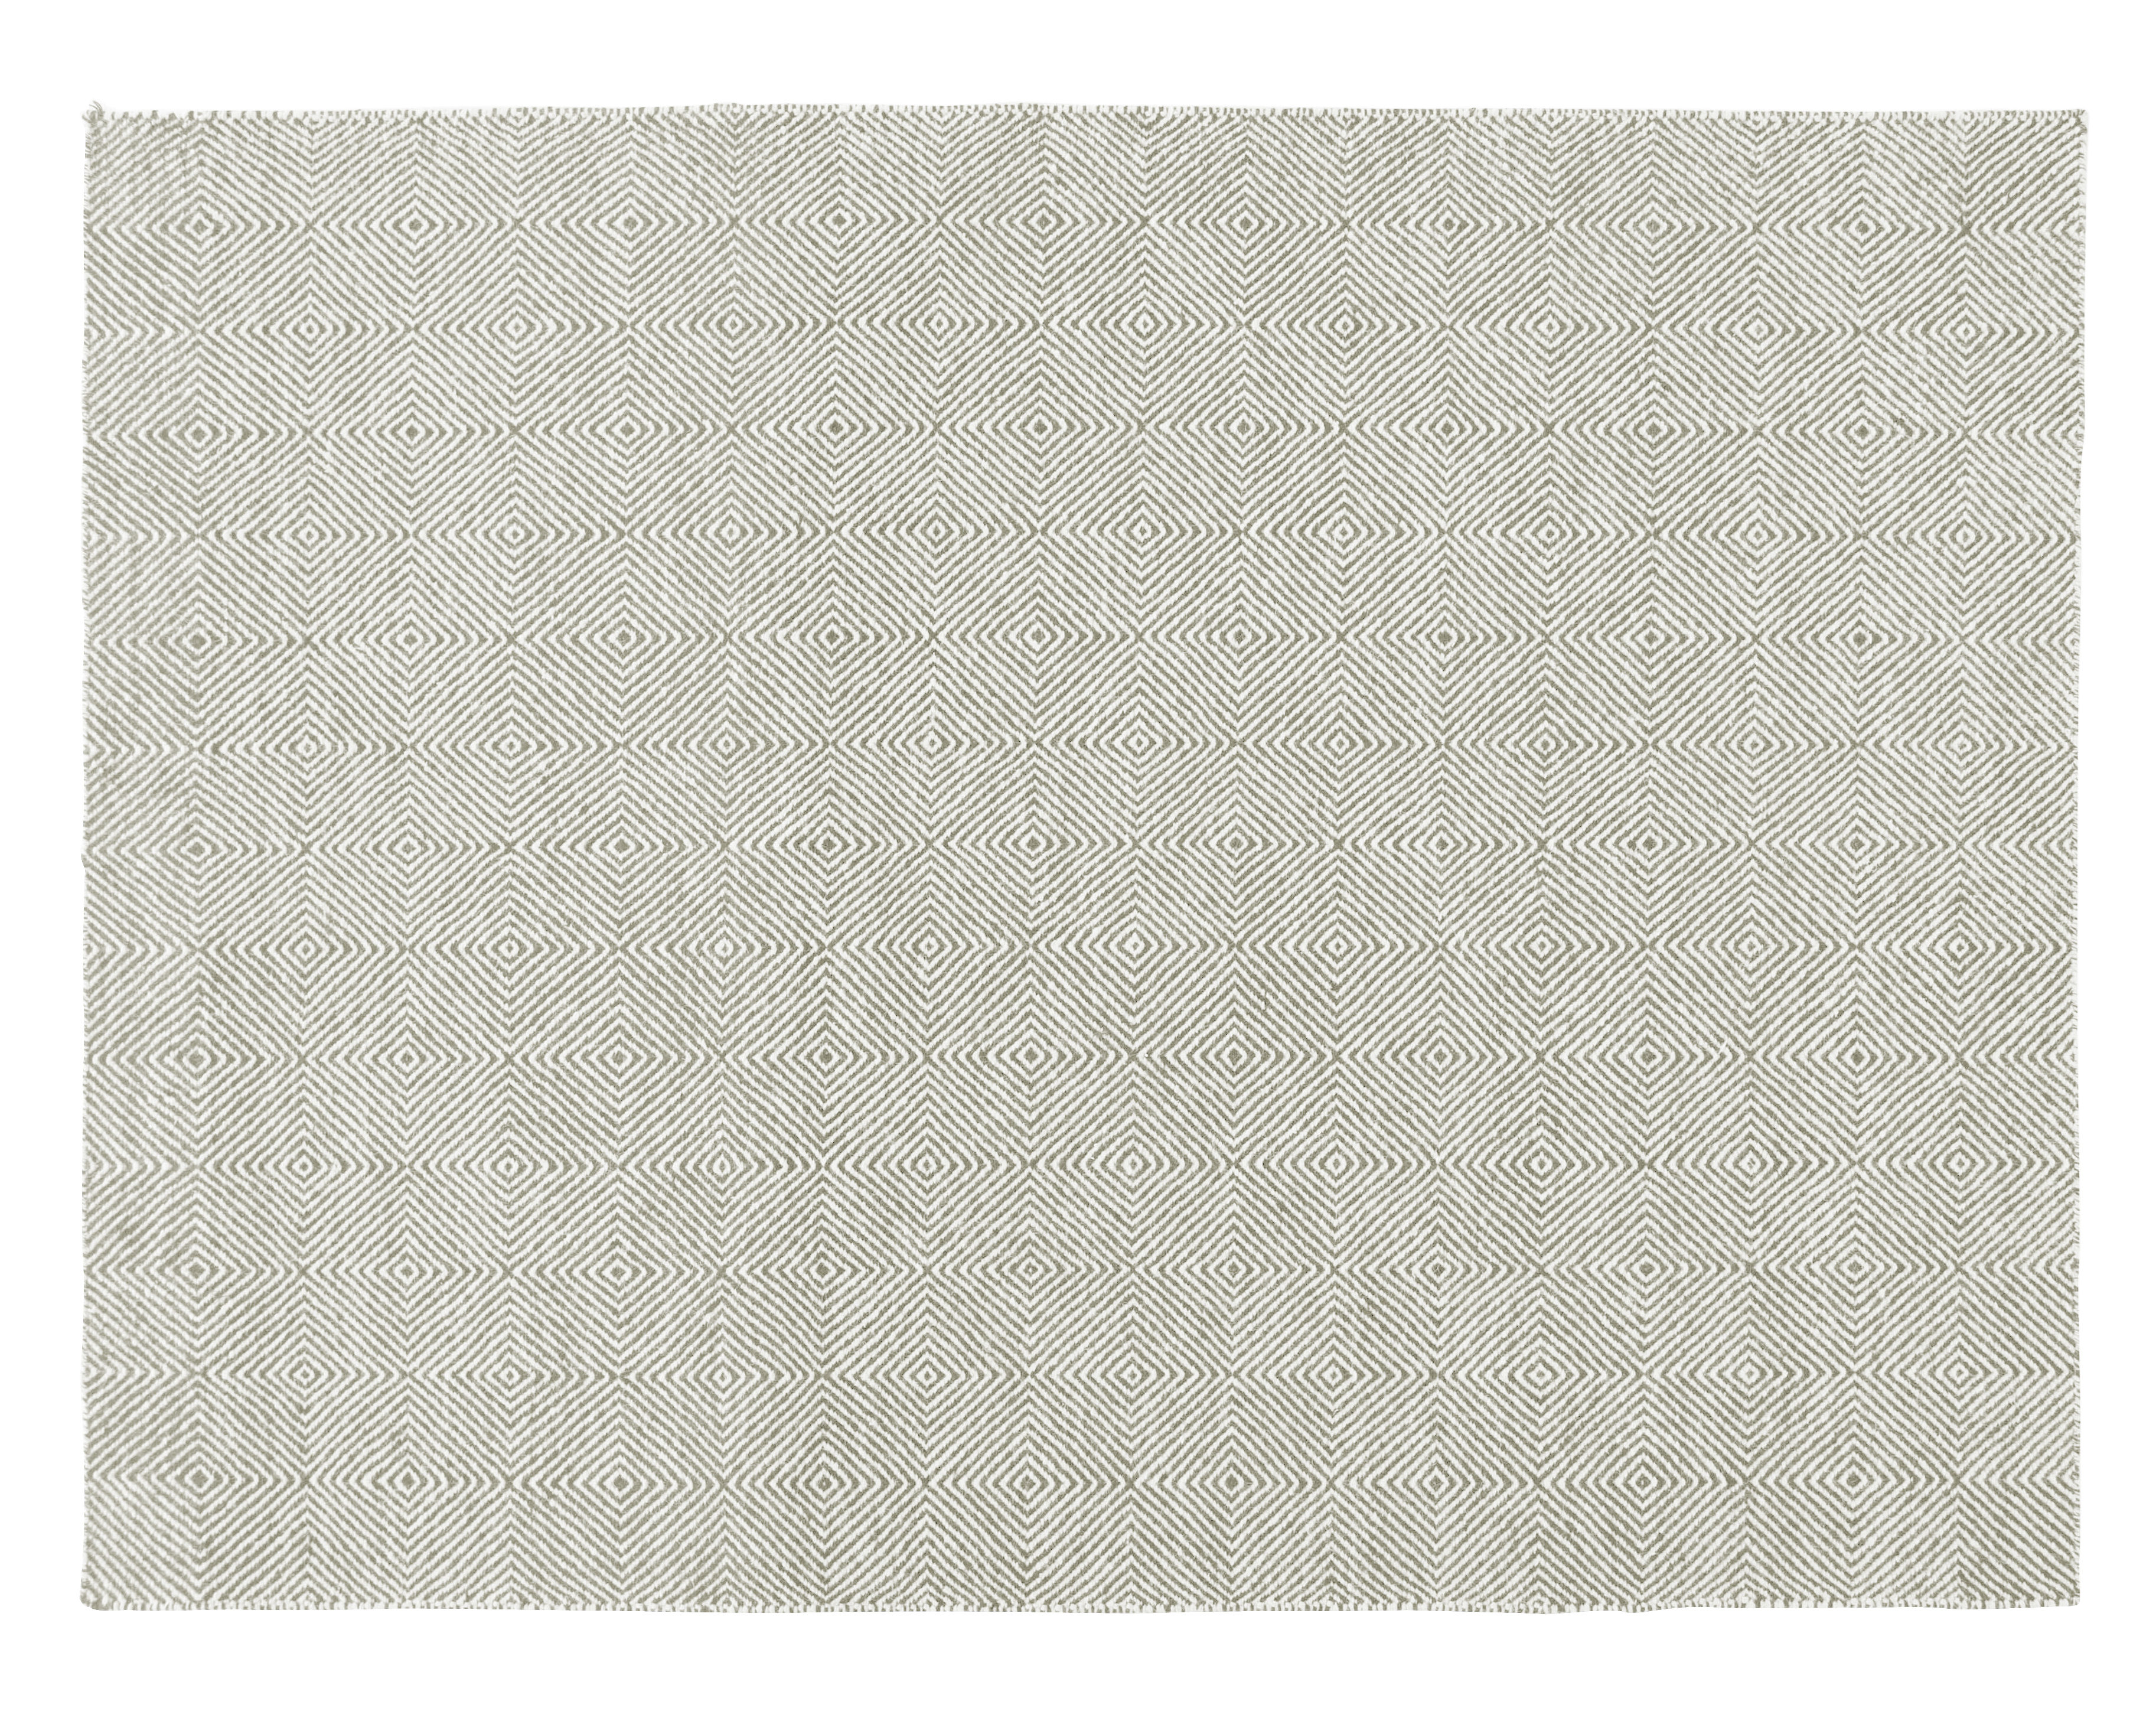 Decoration - Rugs - Sail Rug - / 200 x 150 cm by Gan - Taupe - Virgin wool